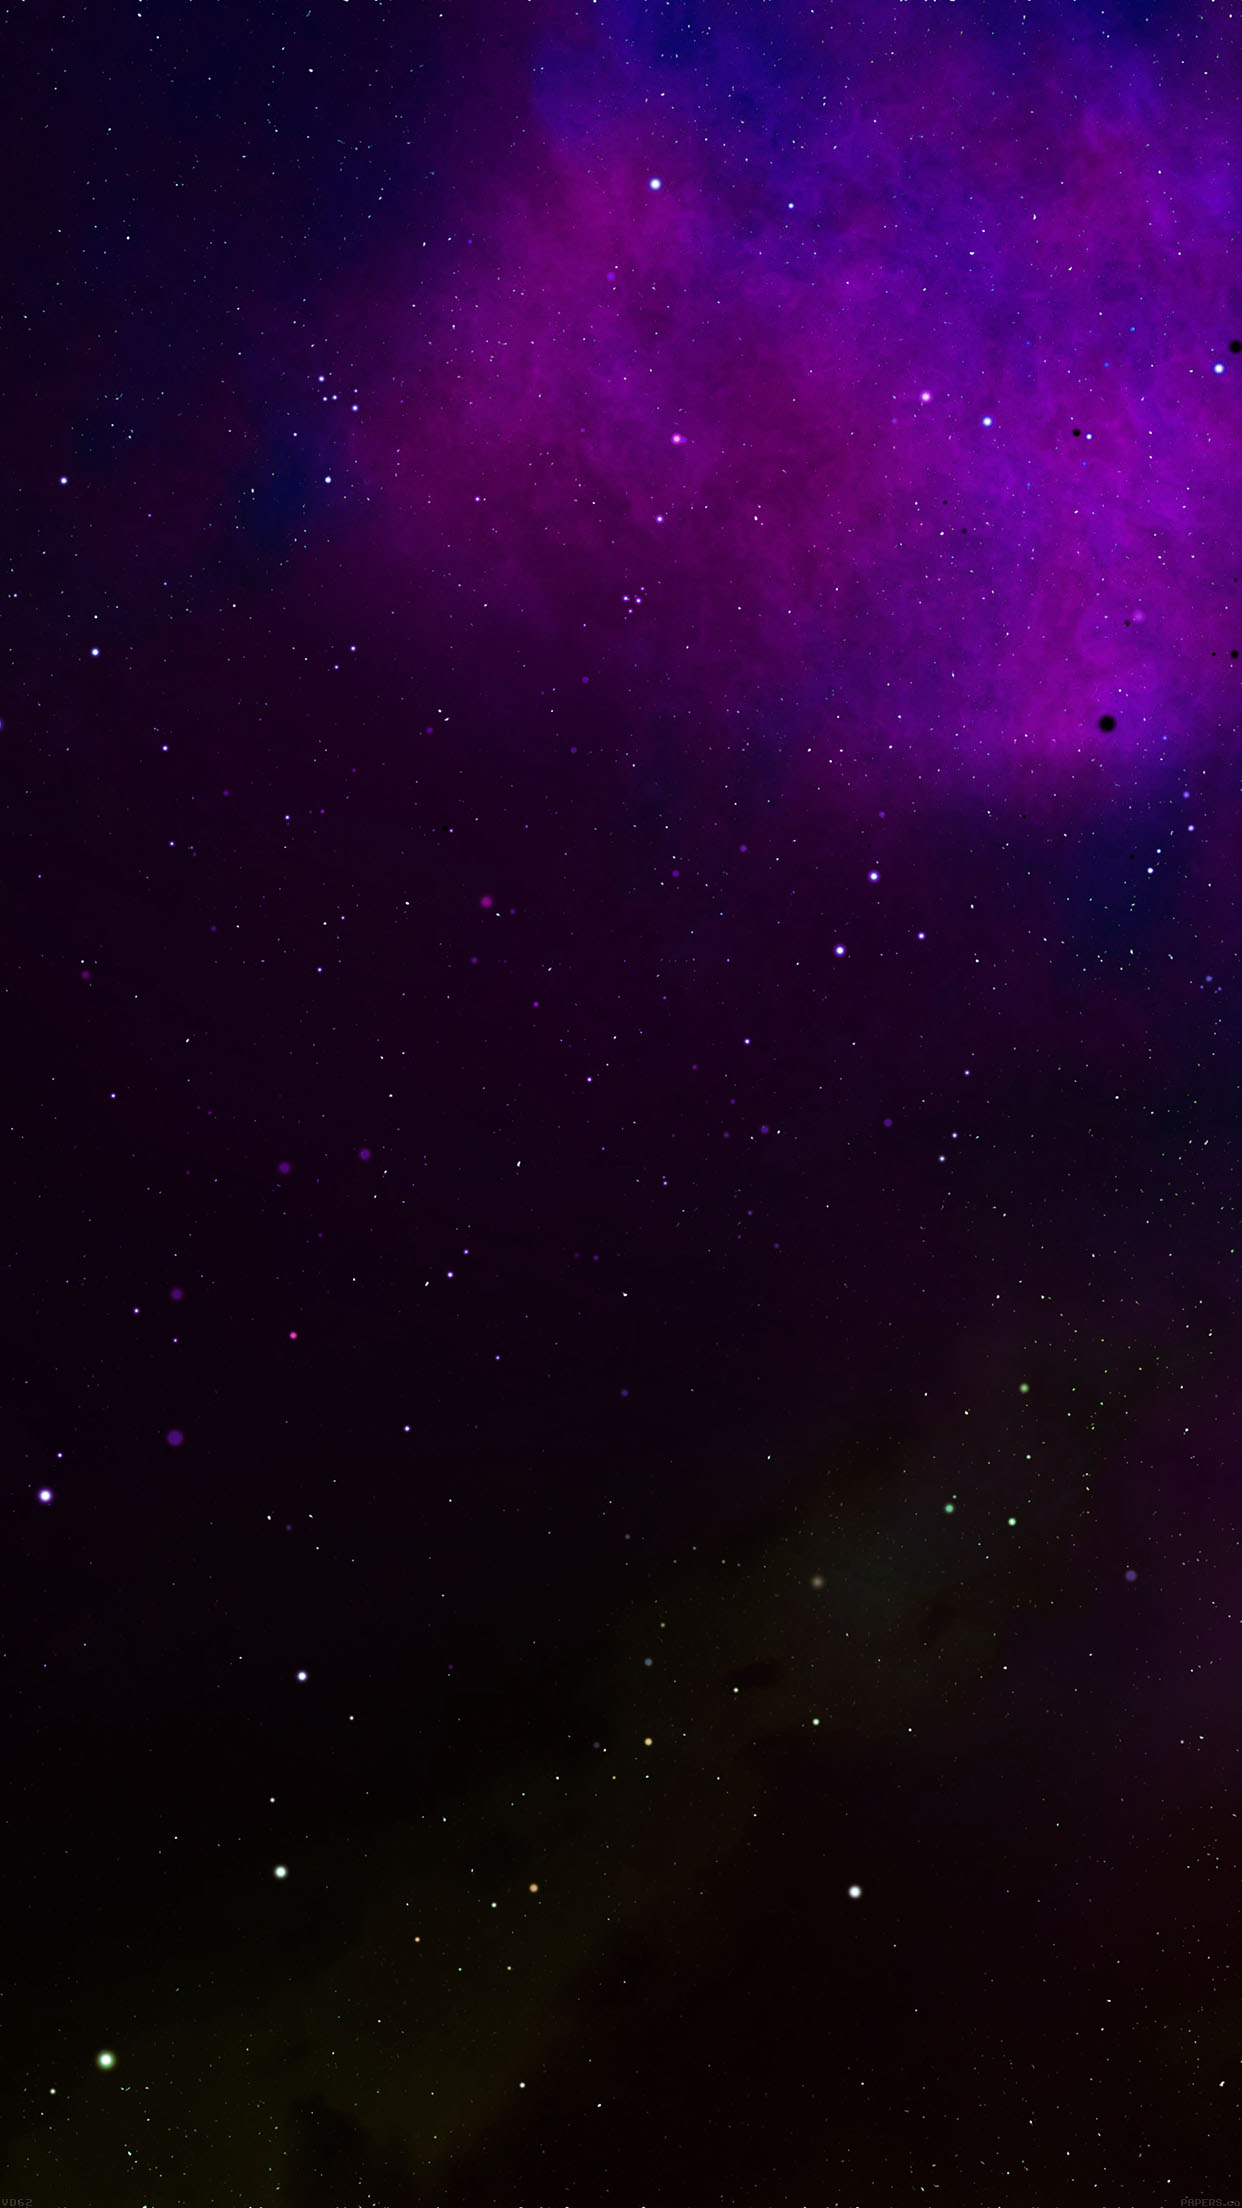 Frontier Galaxy Space Colorful Star Nebula Android wallpaper